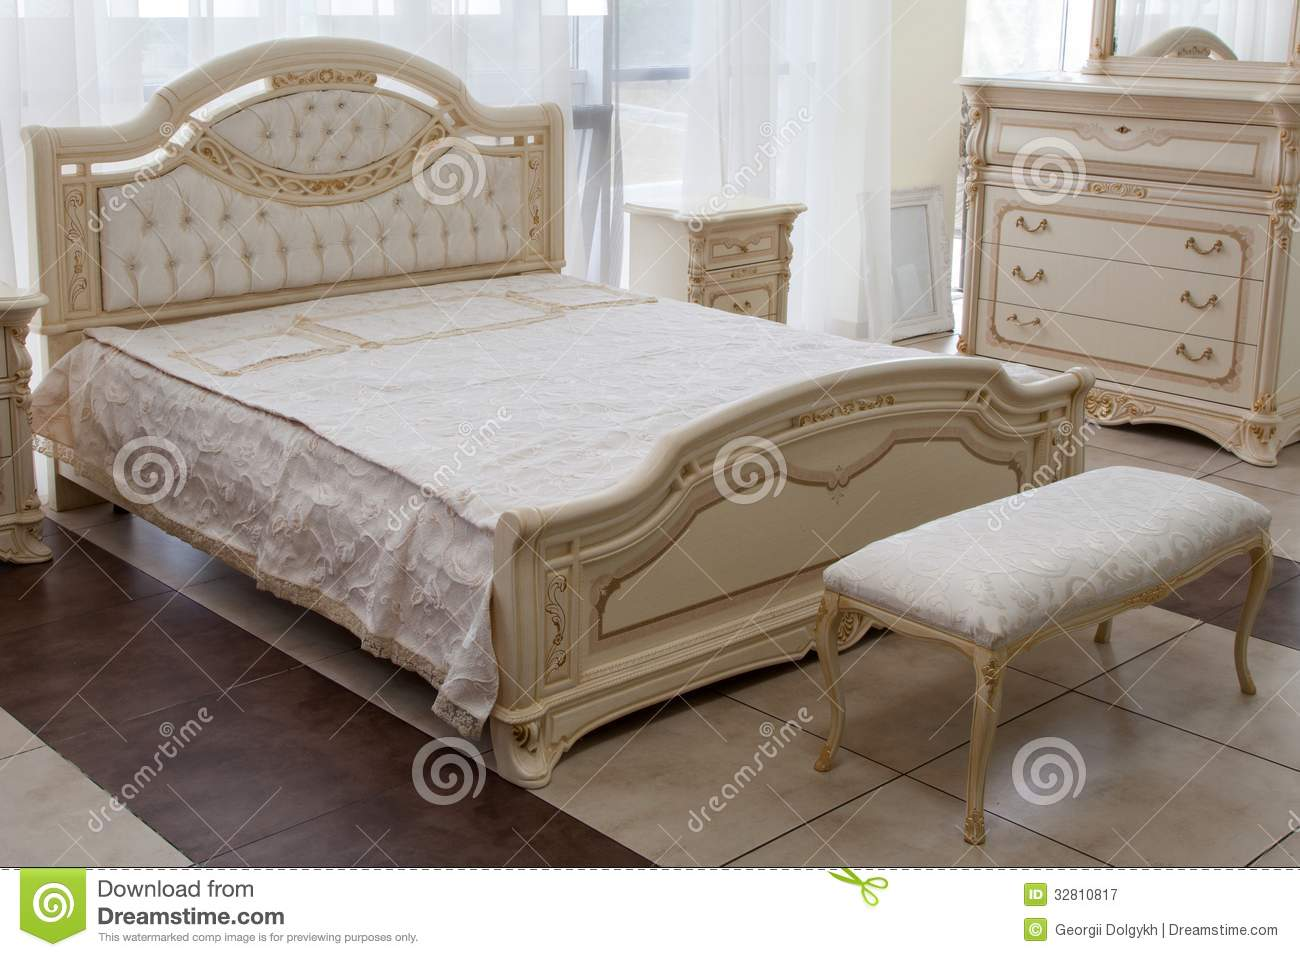 Awesome chambre a coucher royal italy images design for Chambre moderne